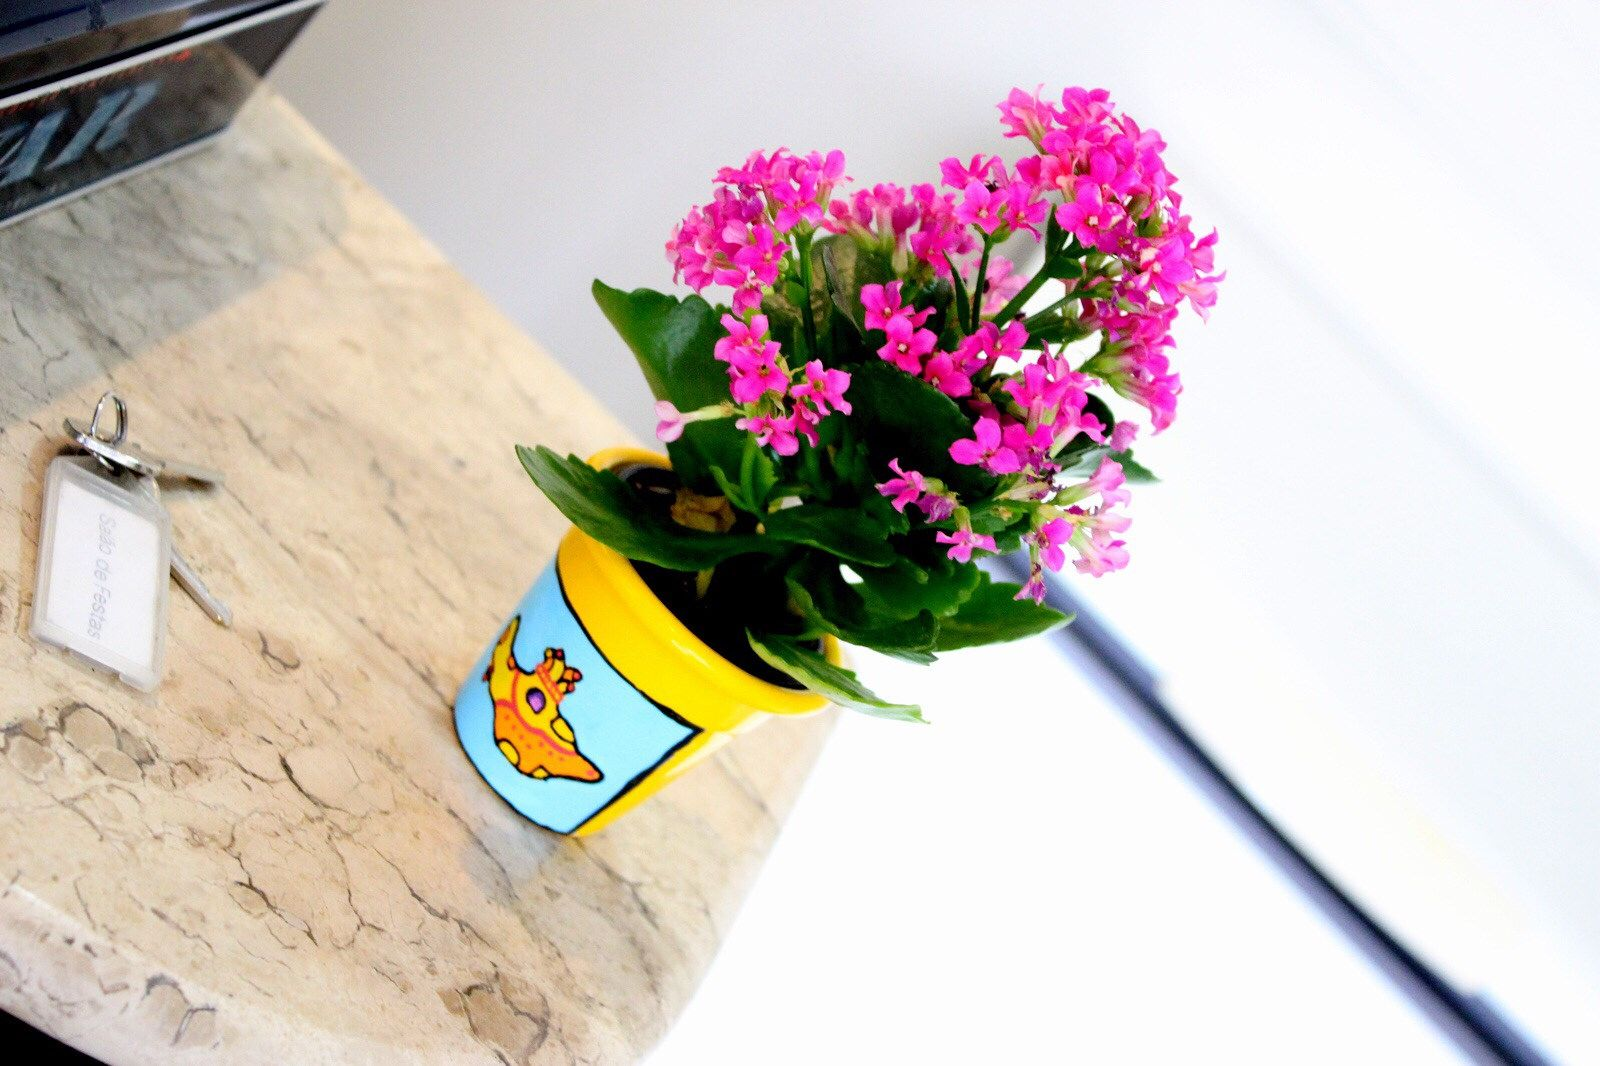 Beatles Yellow Submarine In A Flower Vase My Handcraft Projects